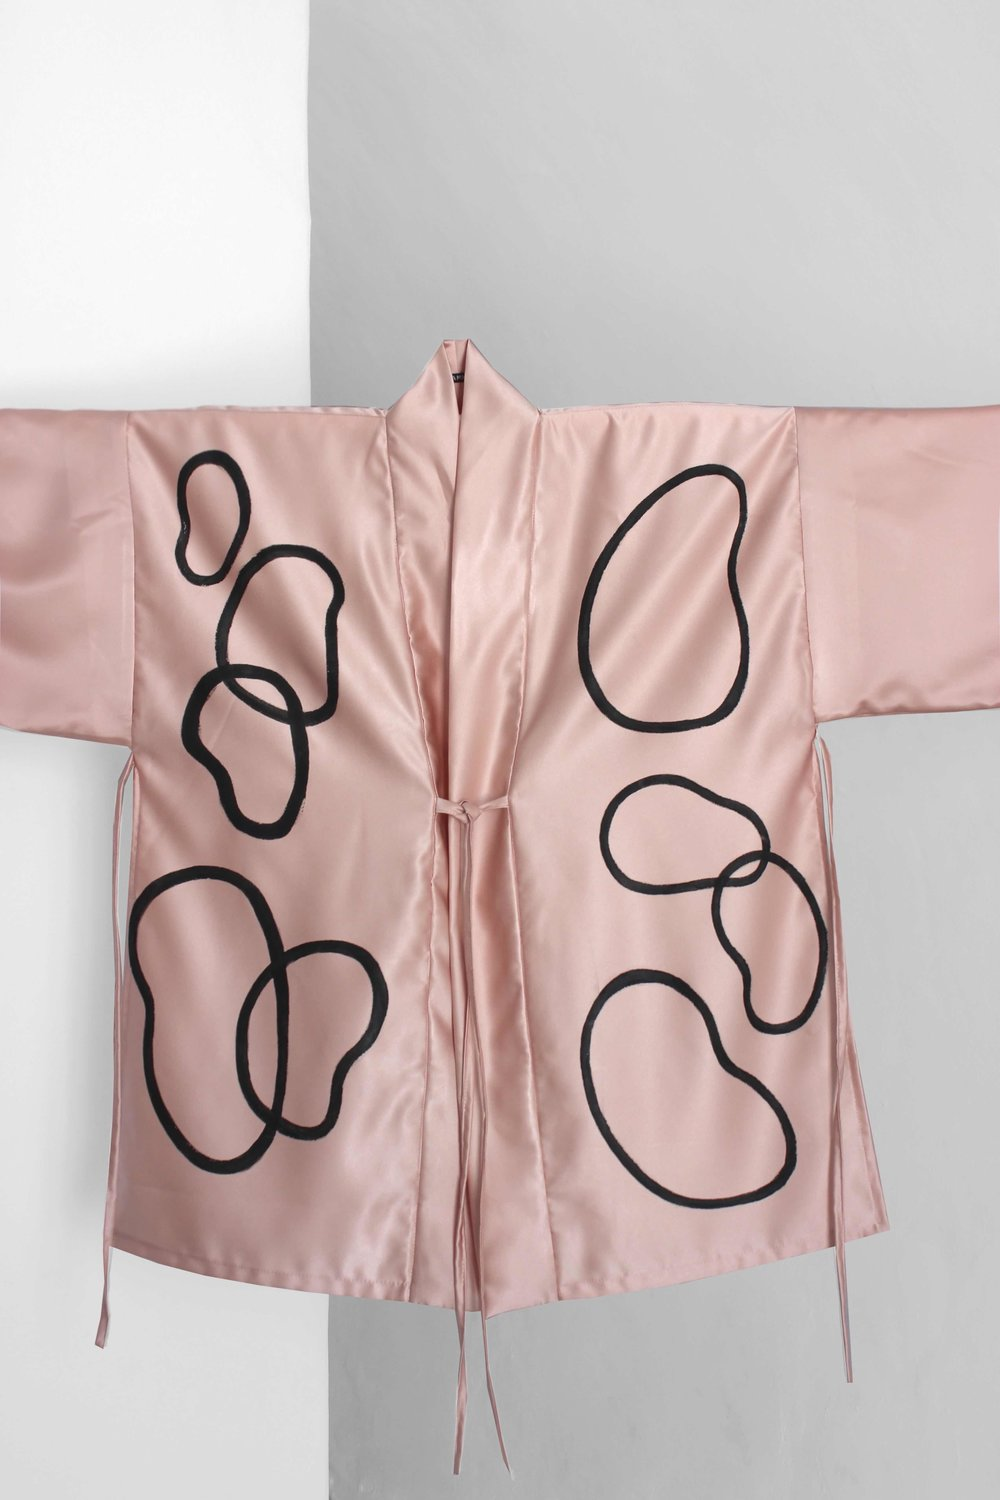 NOA KIMONO - KIMONO IN HIMALAYA PINK SILK WITH BLACK SHAPES.